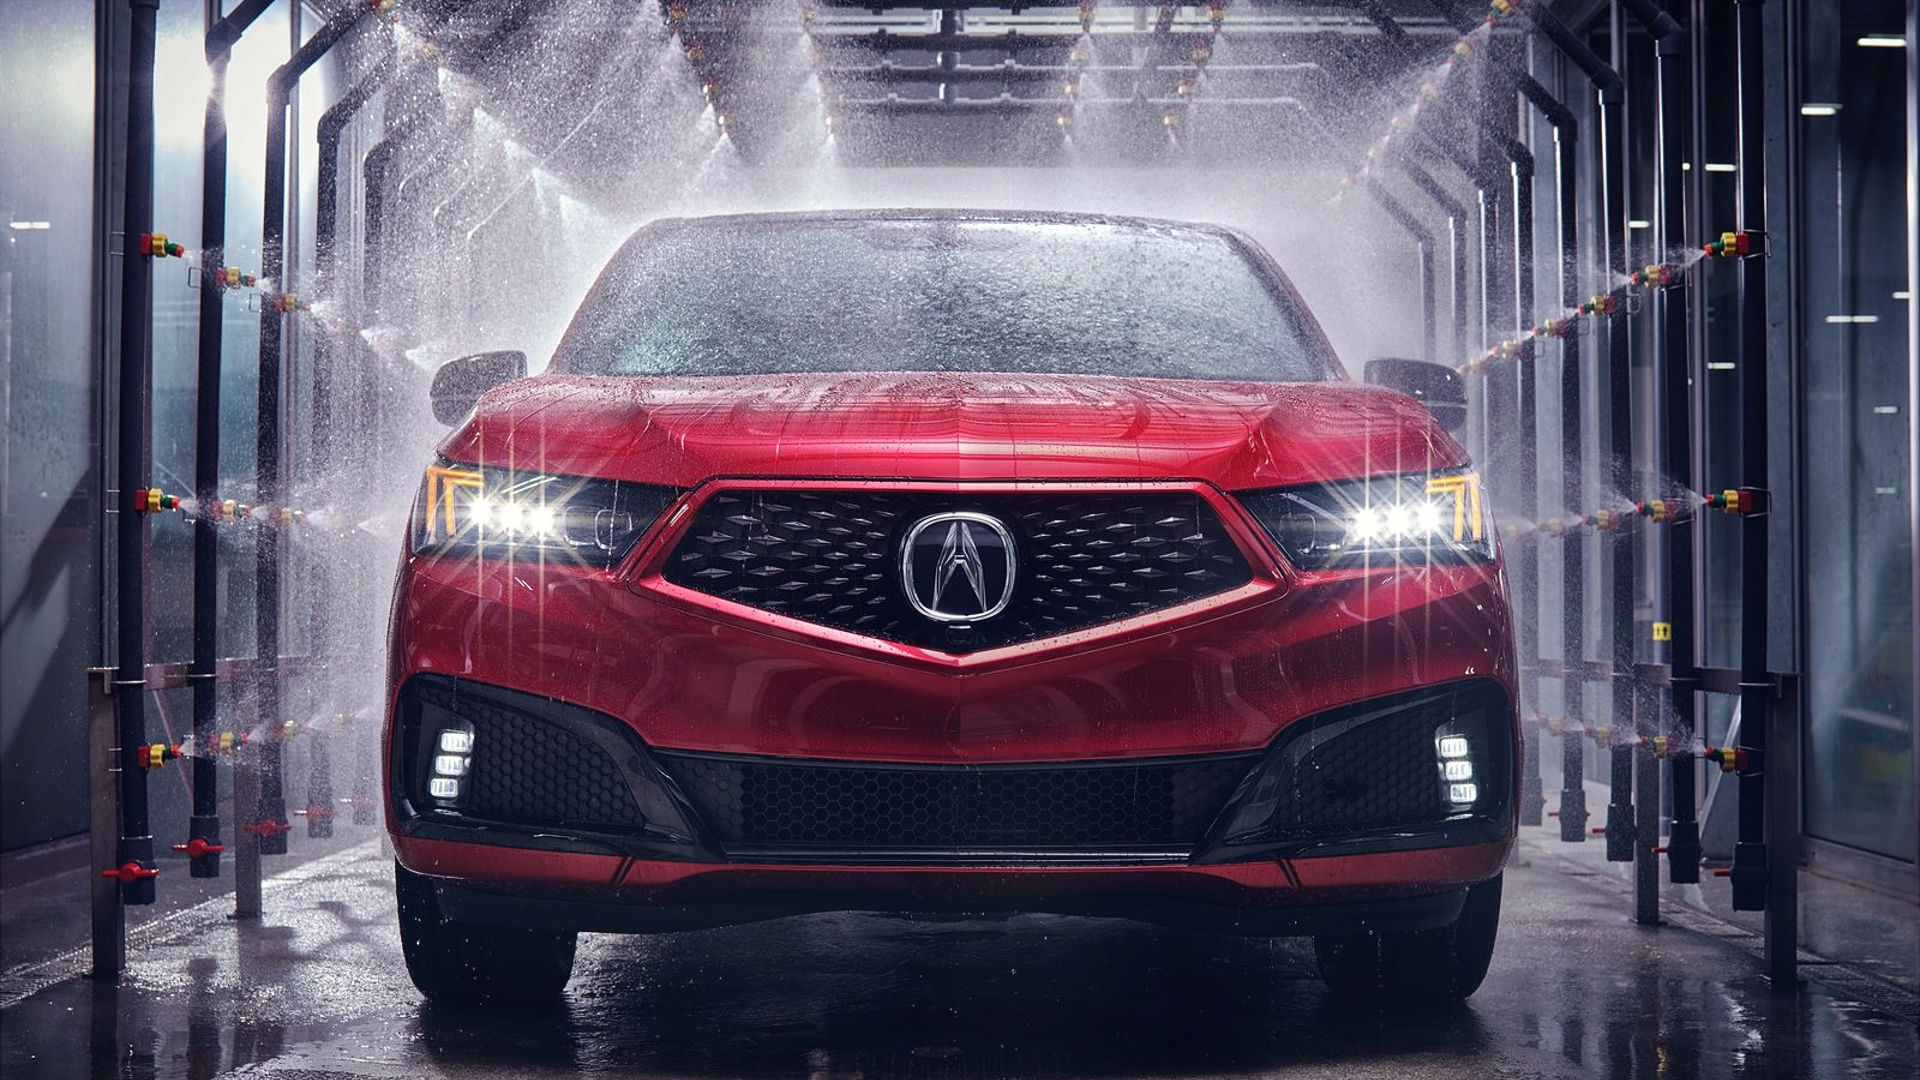 acura mdx pmc edition 2020 specs wallpaper